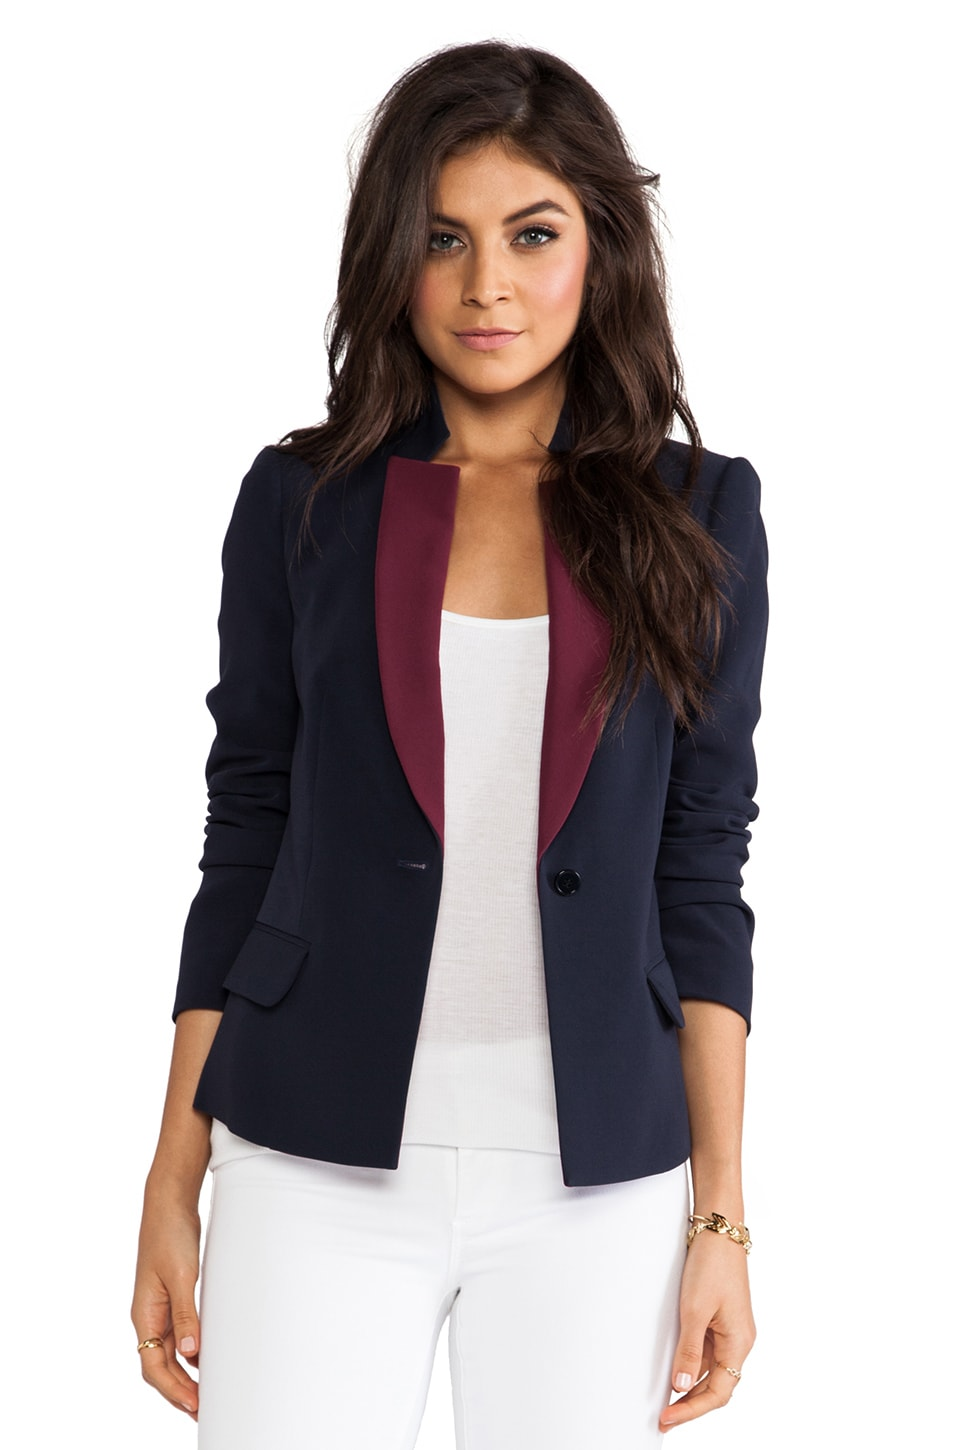 Marc by Marc Jacobs Sparks Crepe Blazer in Ink Blue Multi